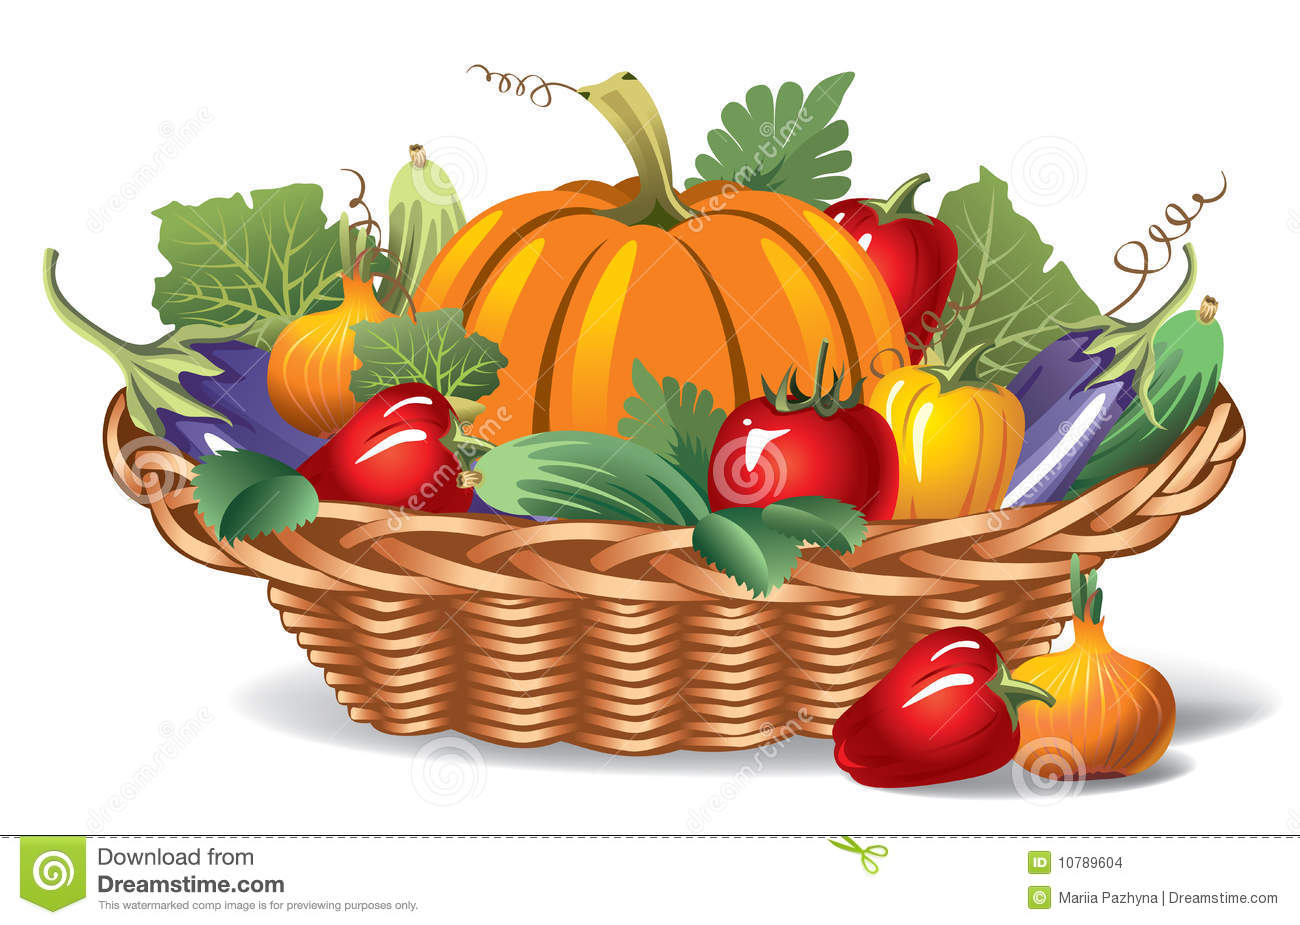 Basket of vegetables clipart.